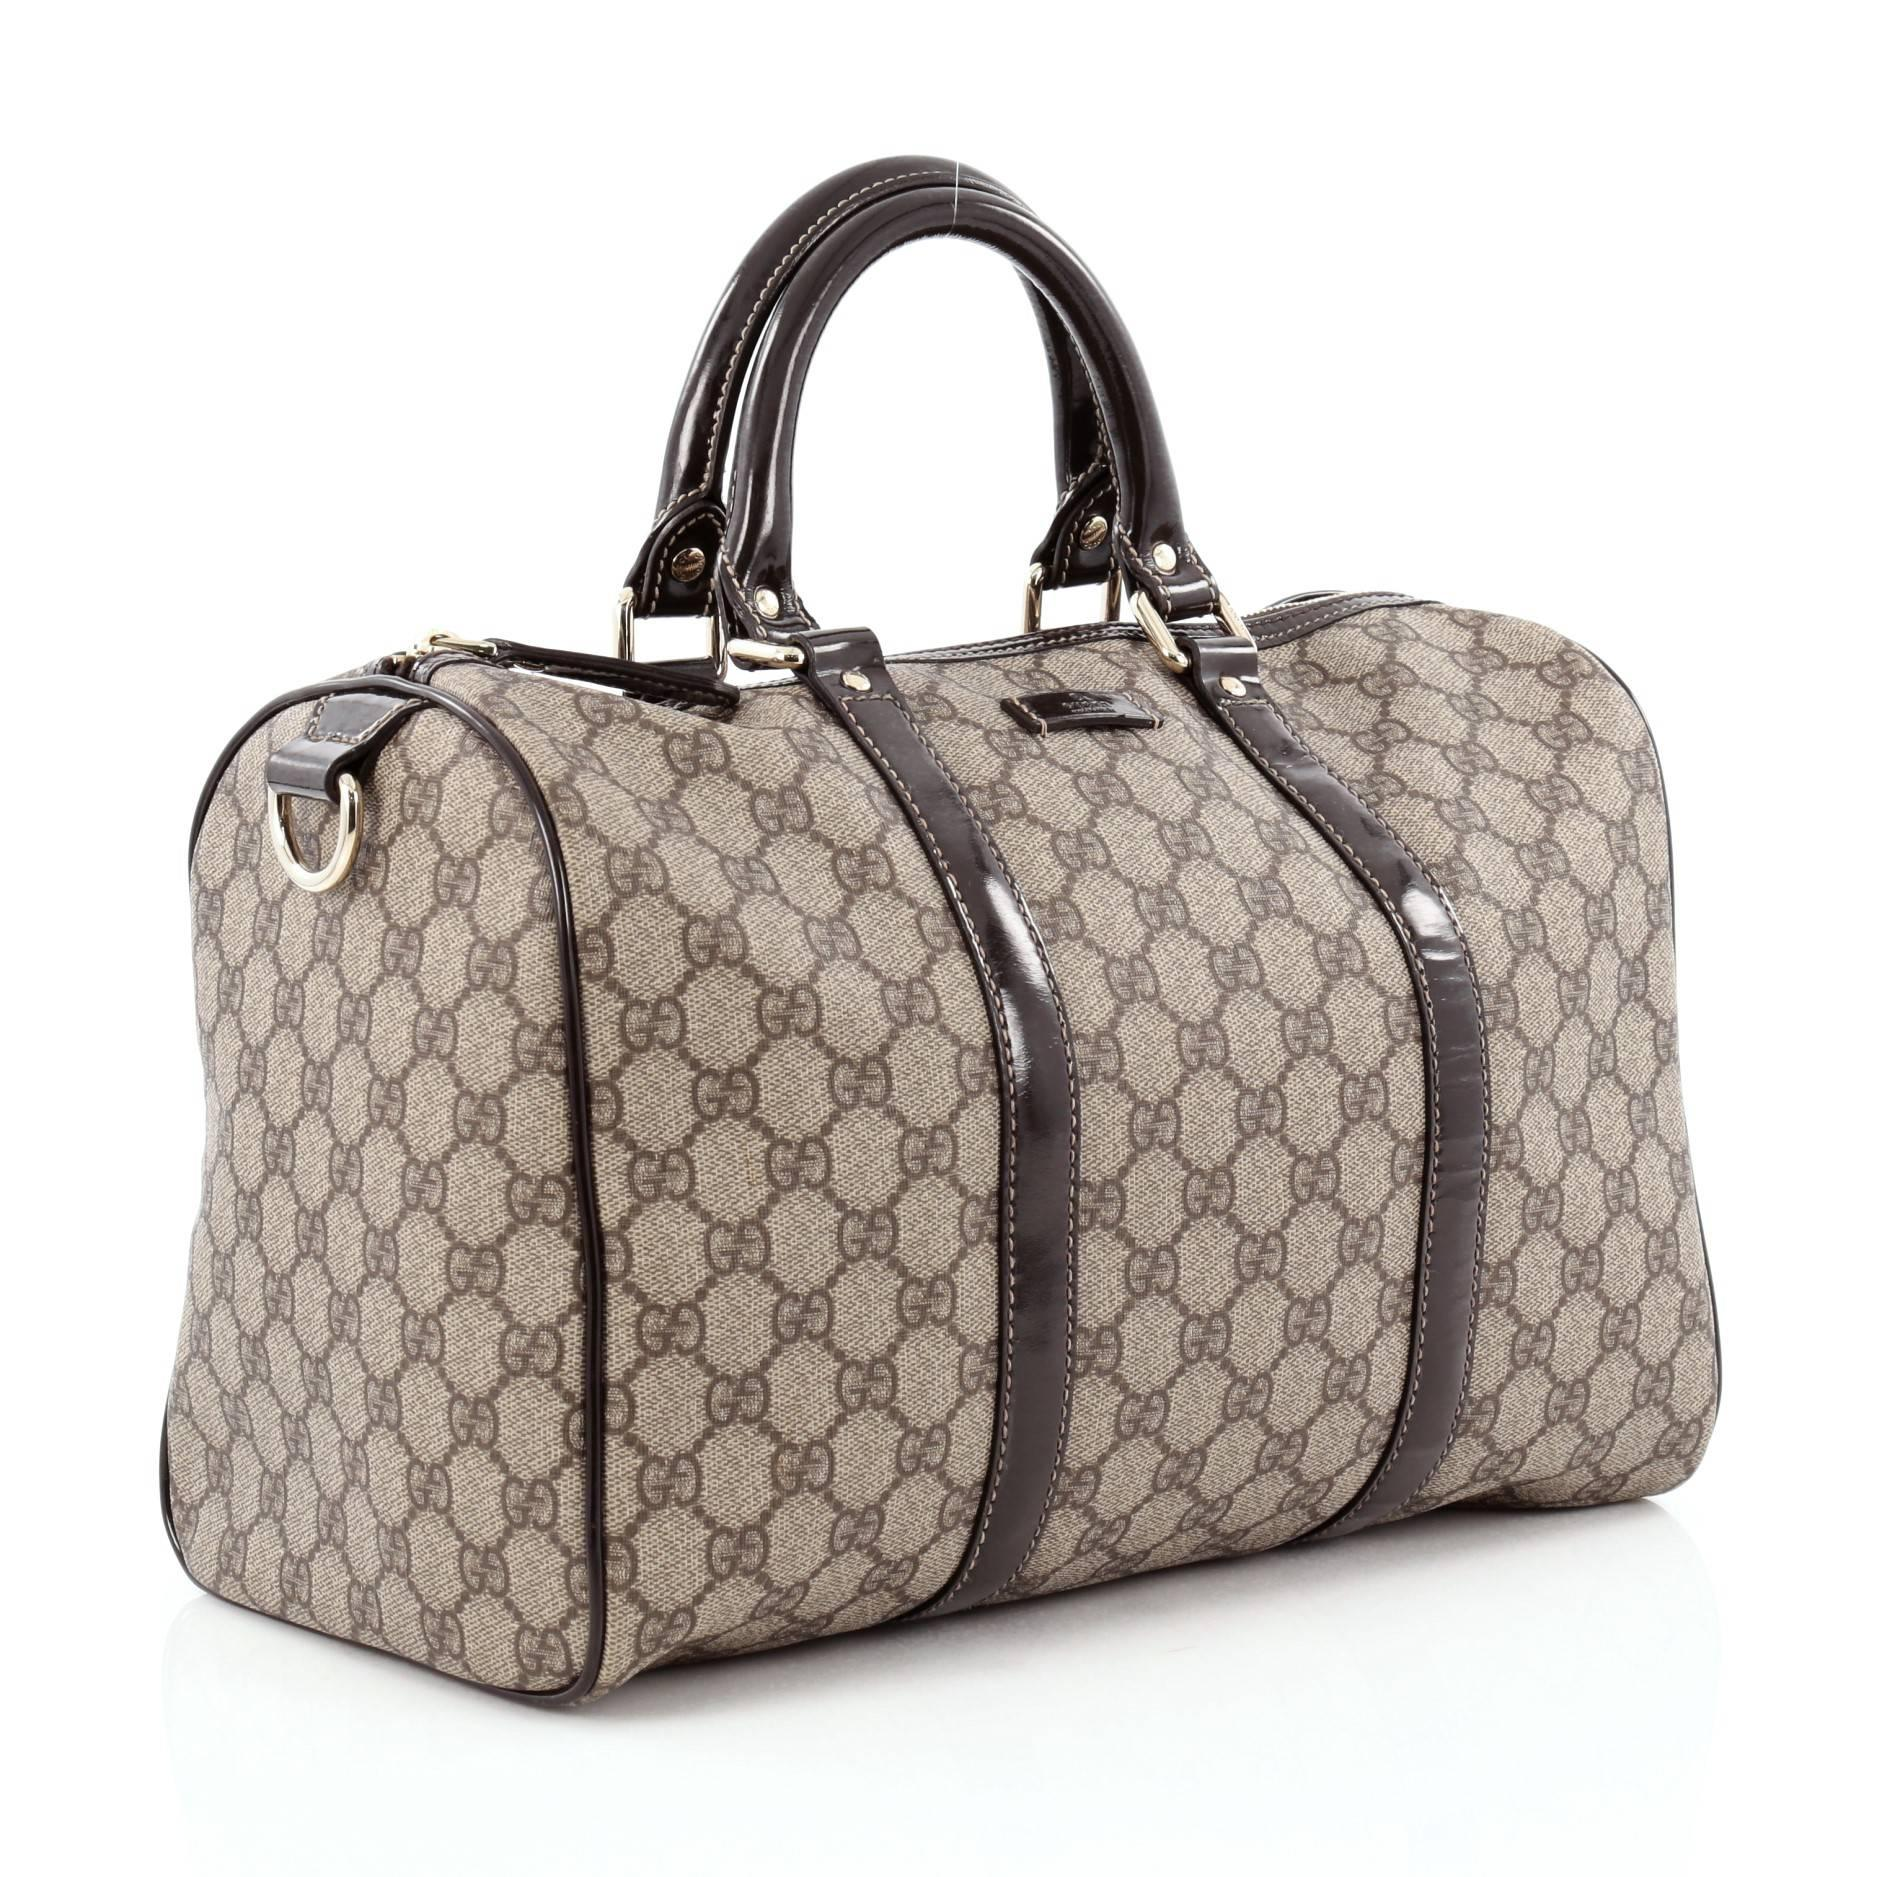 2697bef4c177bb Gucci Joy Boston Bag GG Coated Canvas Medium at 1stdibs